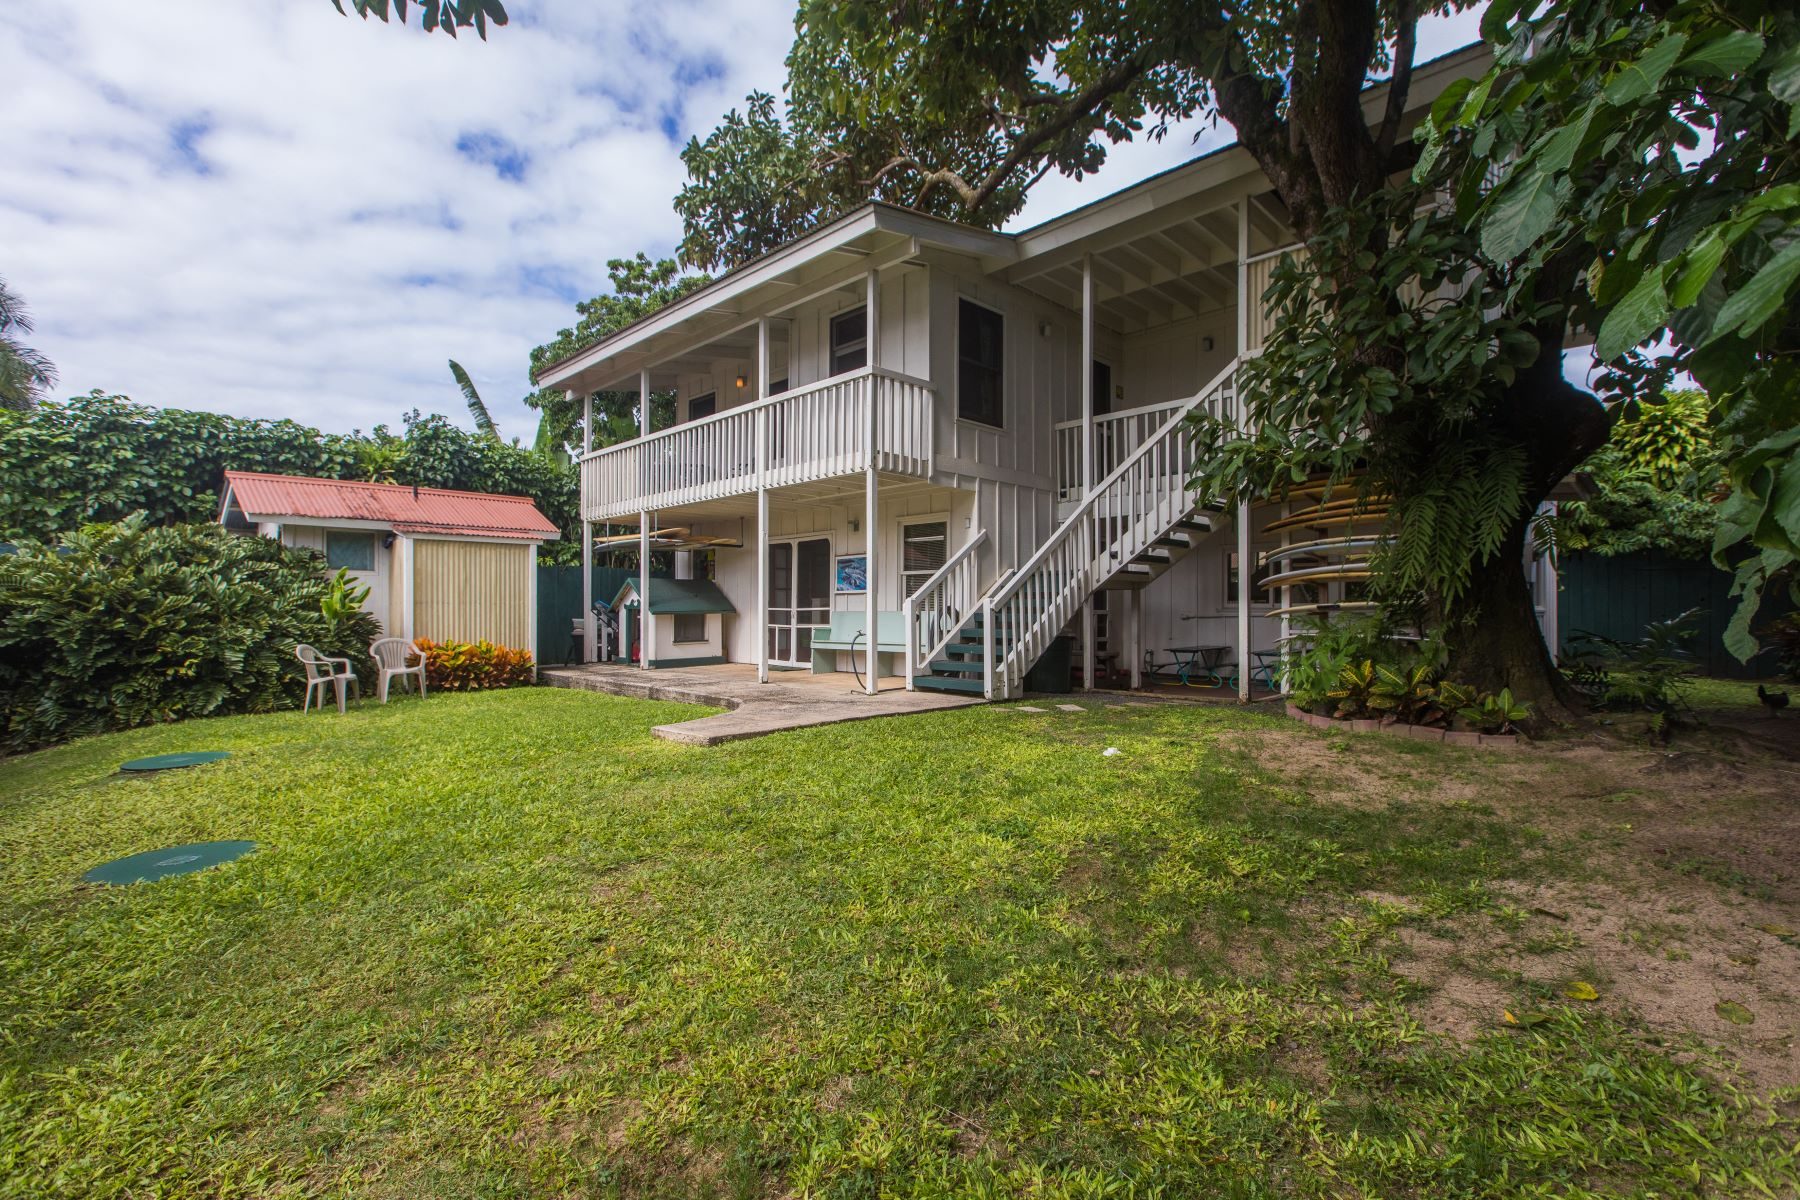 Single Family Home for Sale at Hanalei 5-5428 Kuhio Highway #A & #B, Hanalei, Hawaii, 96714 United States